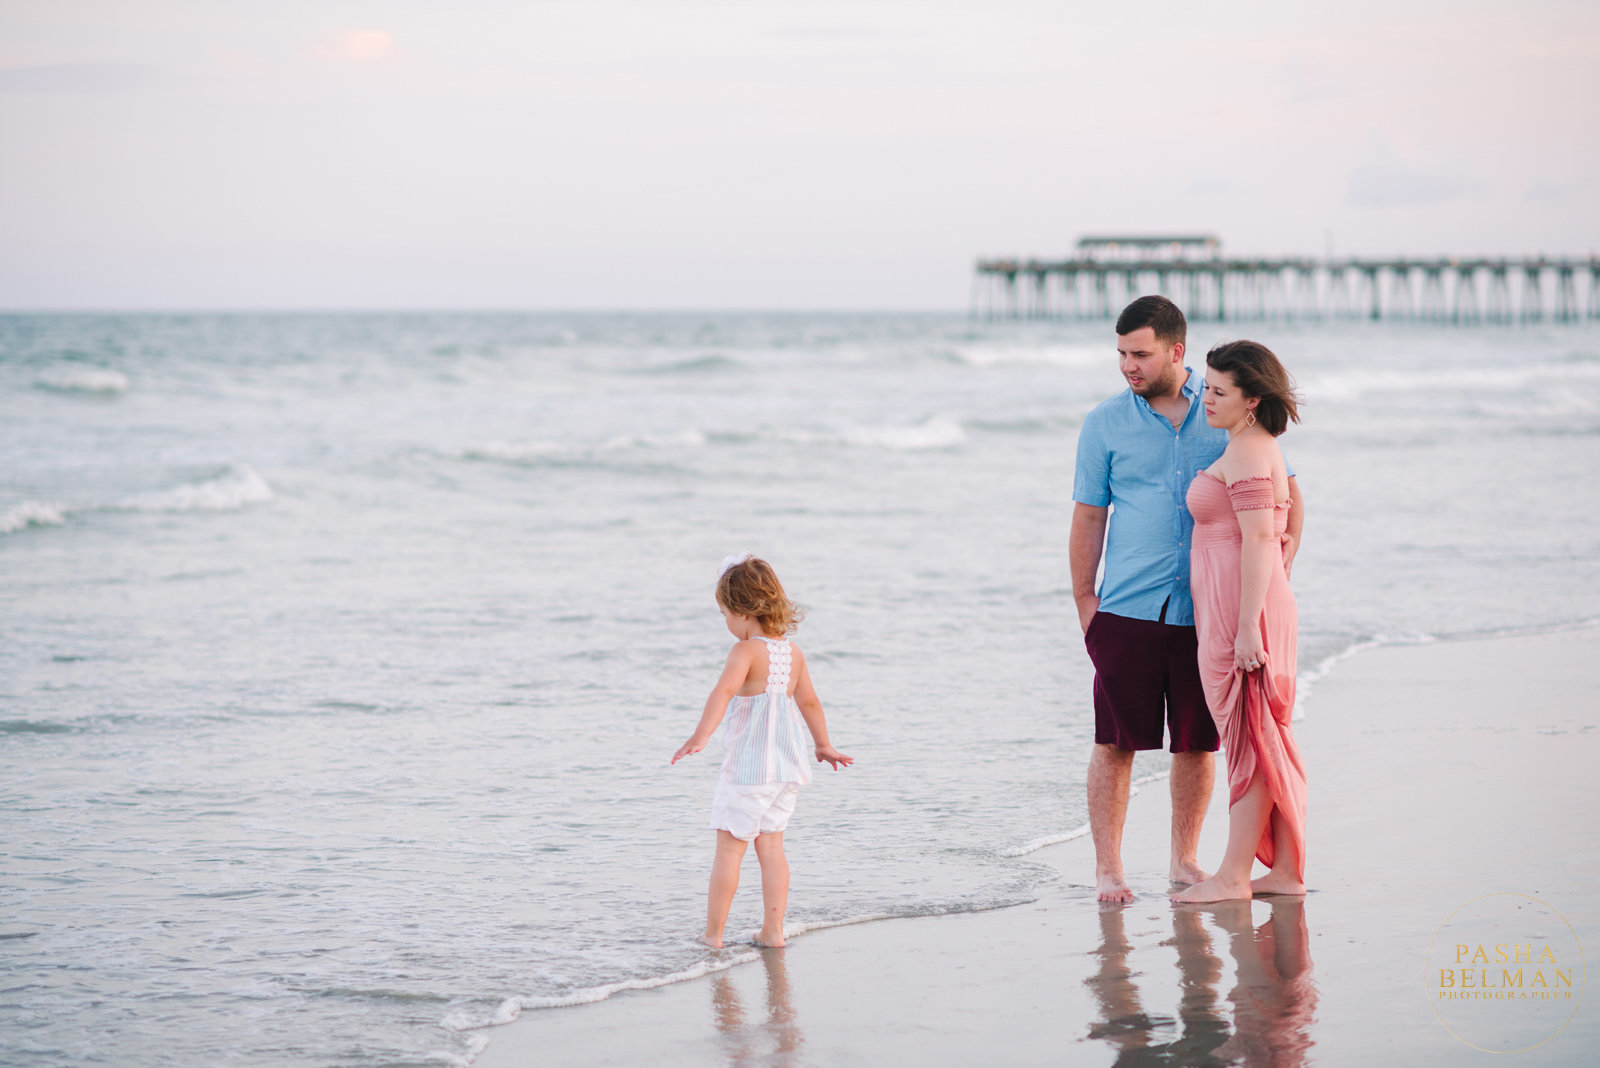 Murrells Inlet Family Photography - top Family Photographer in Murrells Inlet Pasha Belman-6